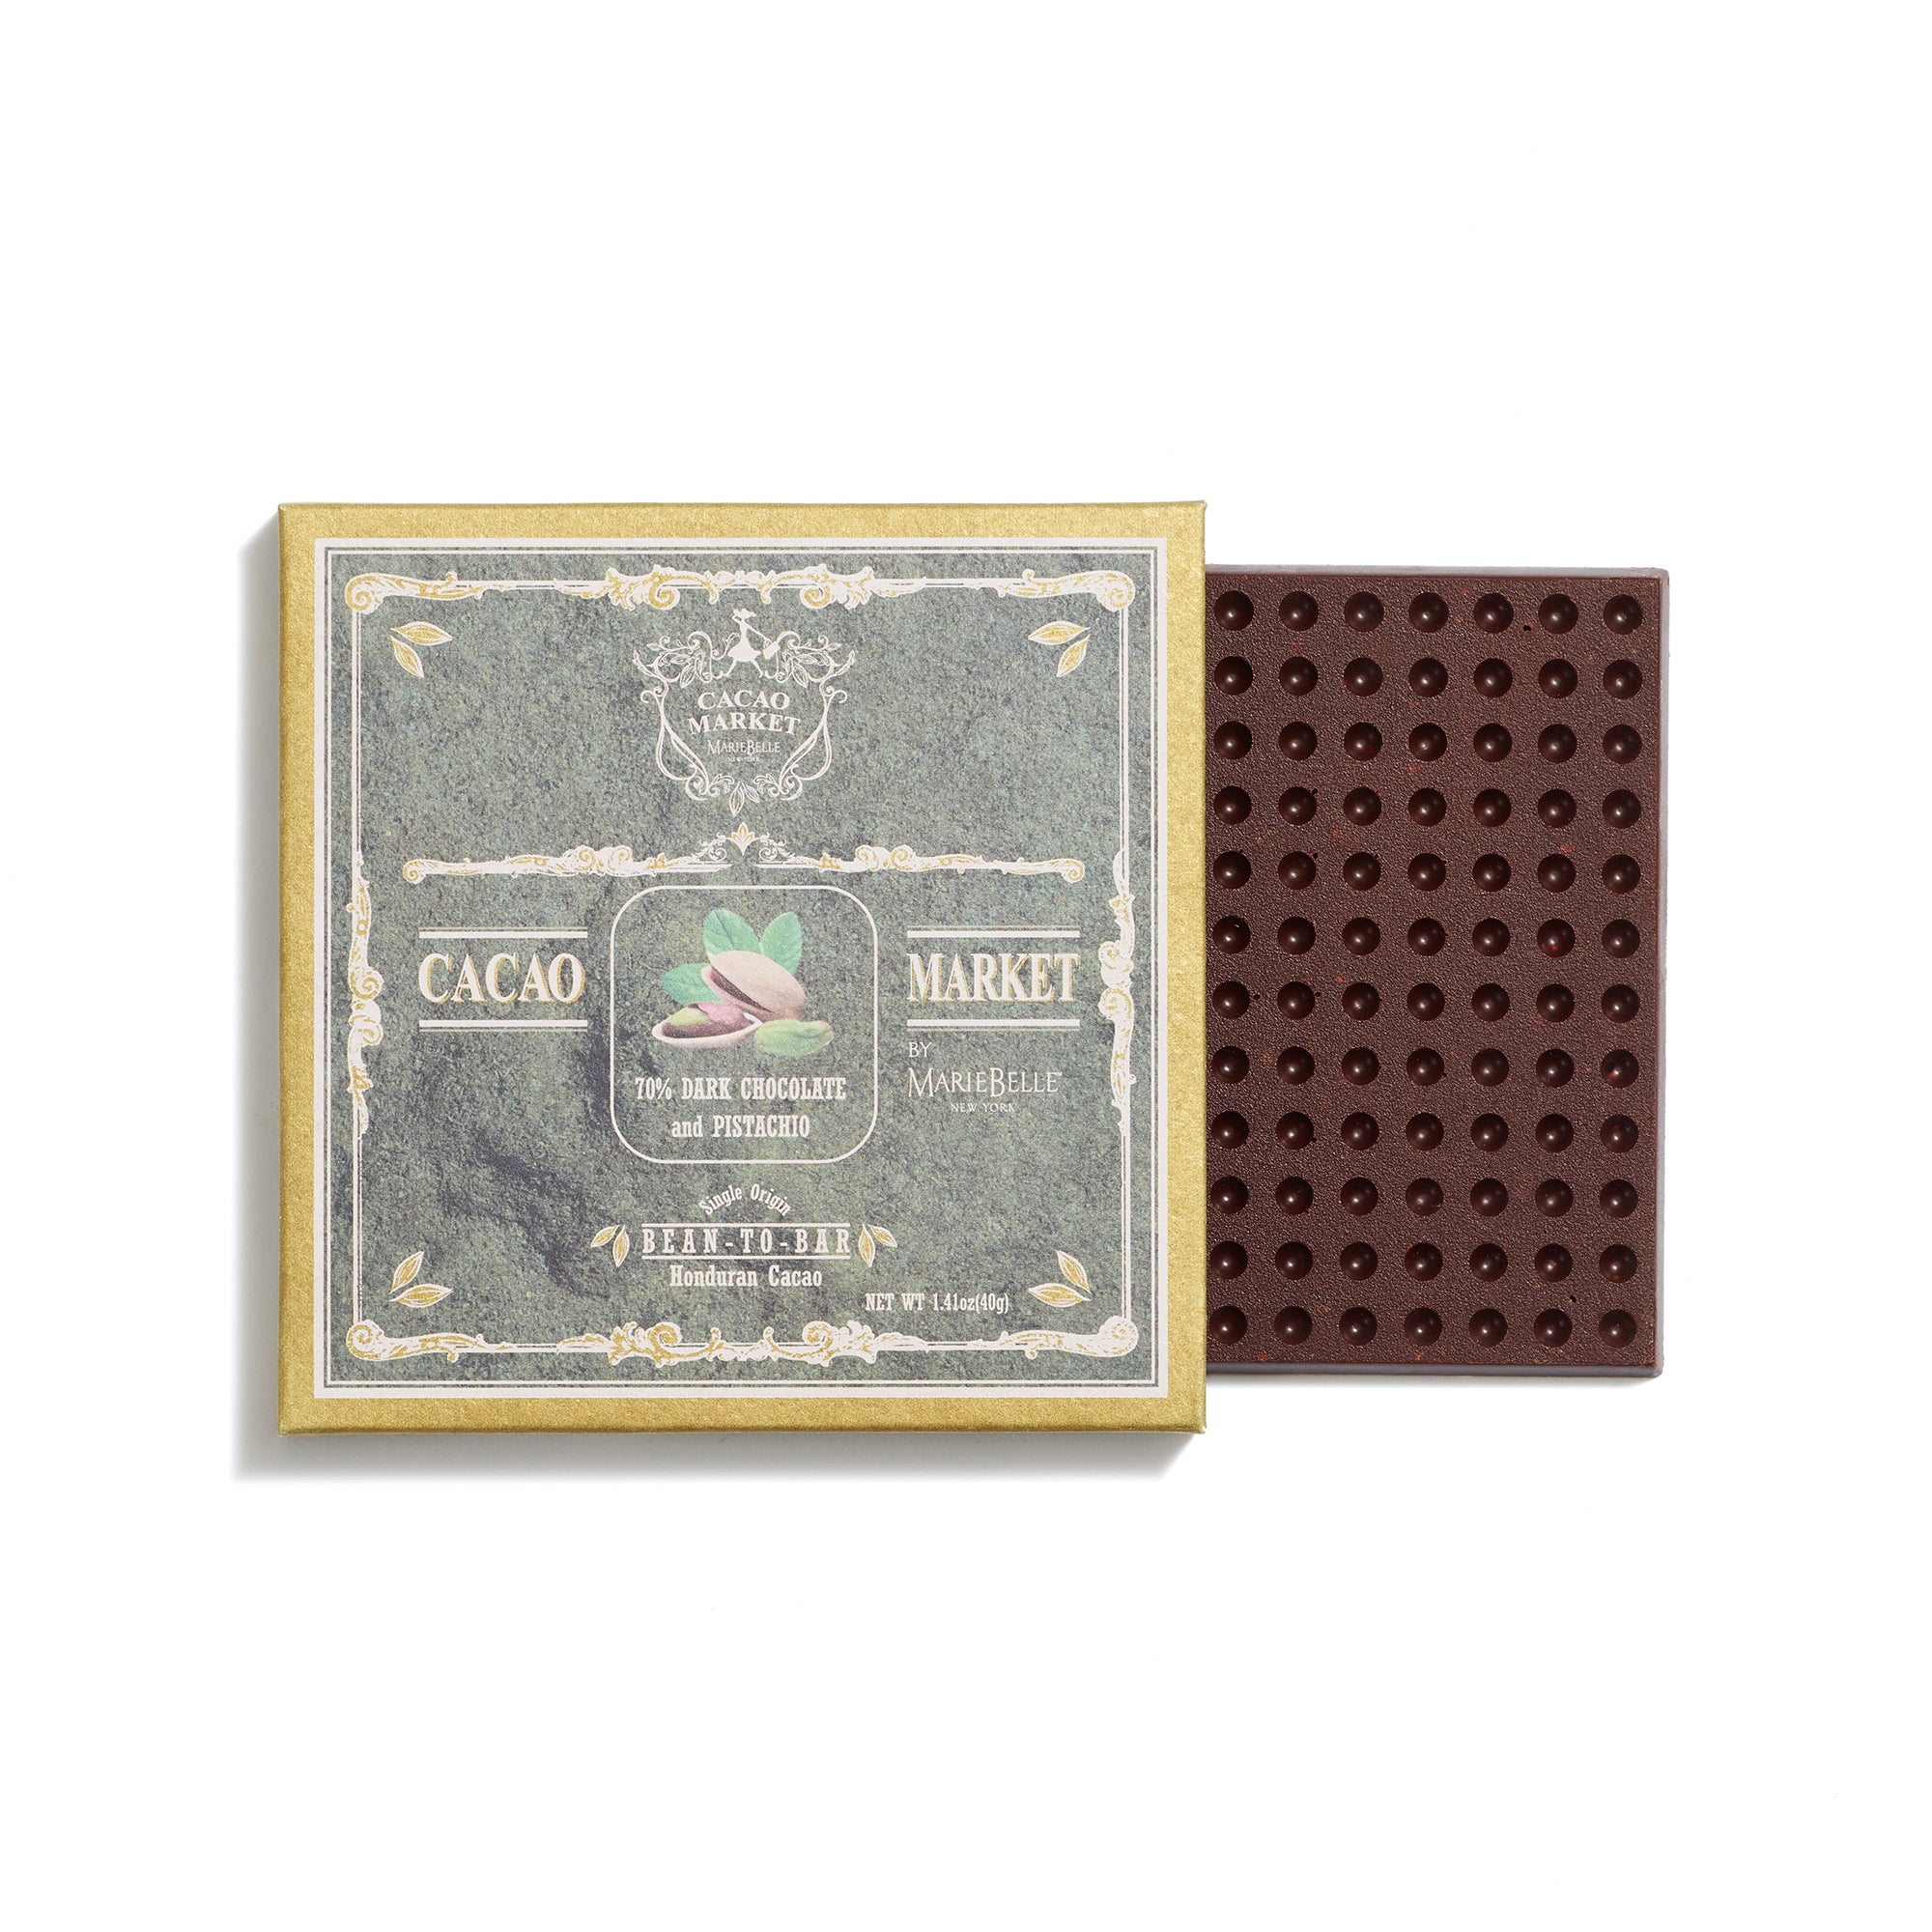 40g 72% Dark Chocolate with Pistachio Bar